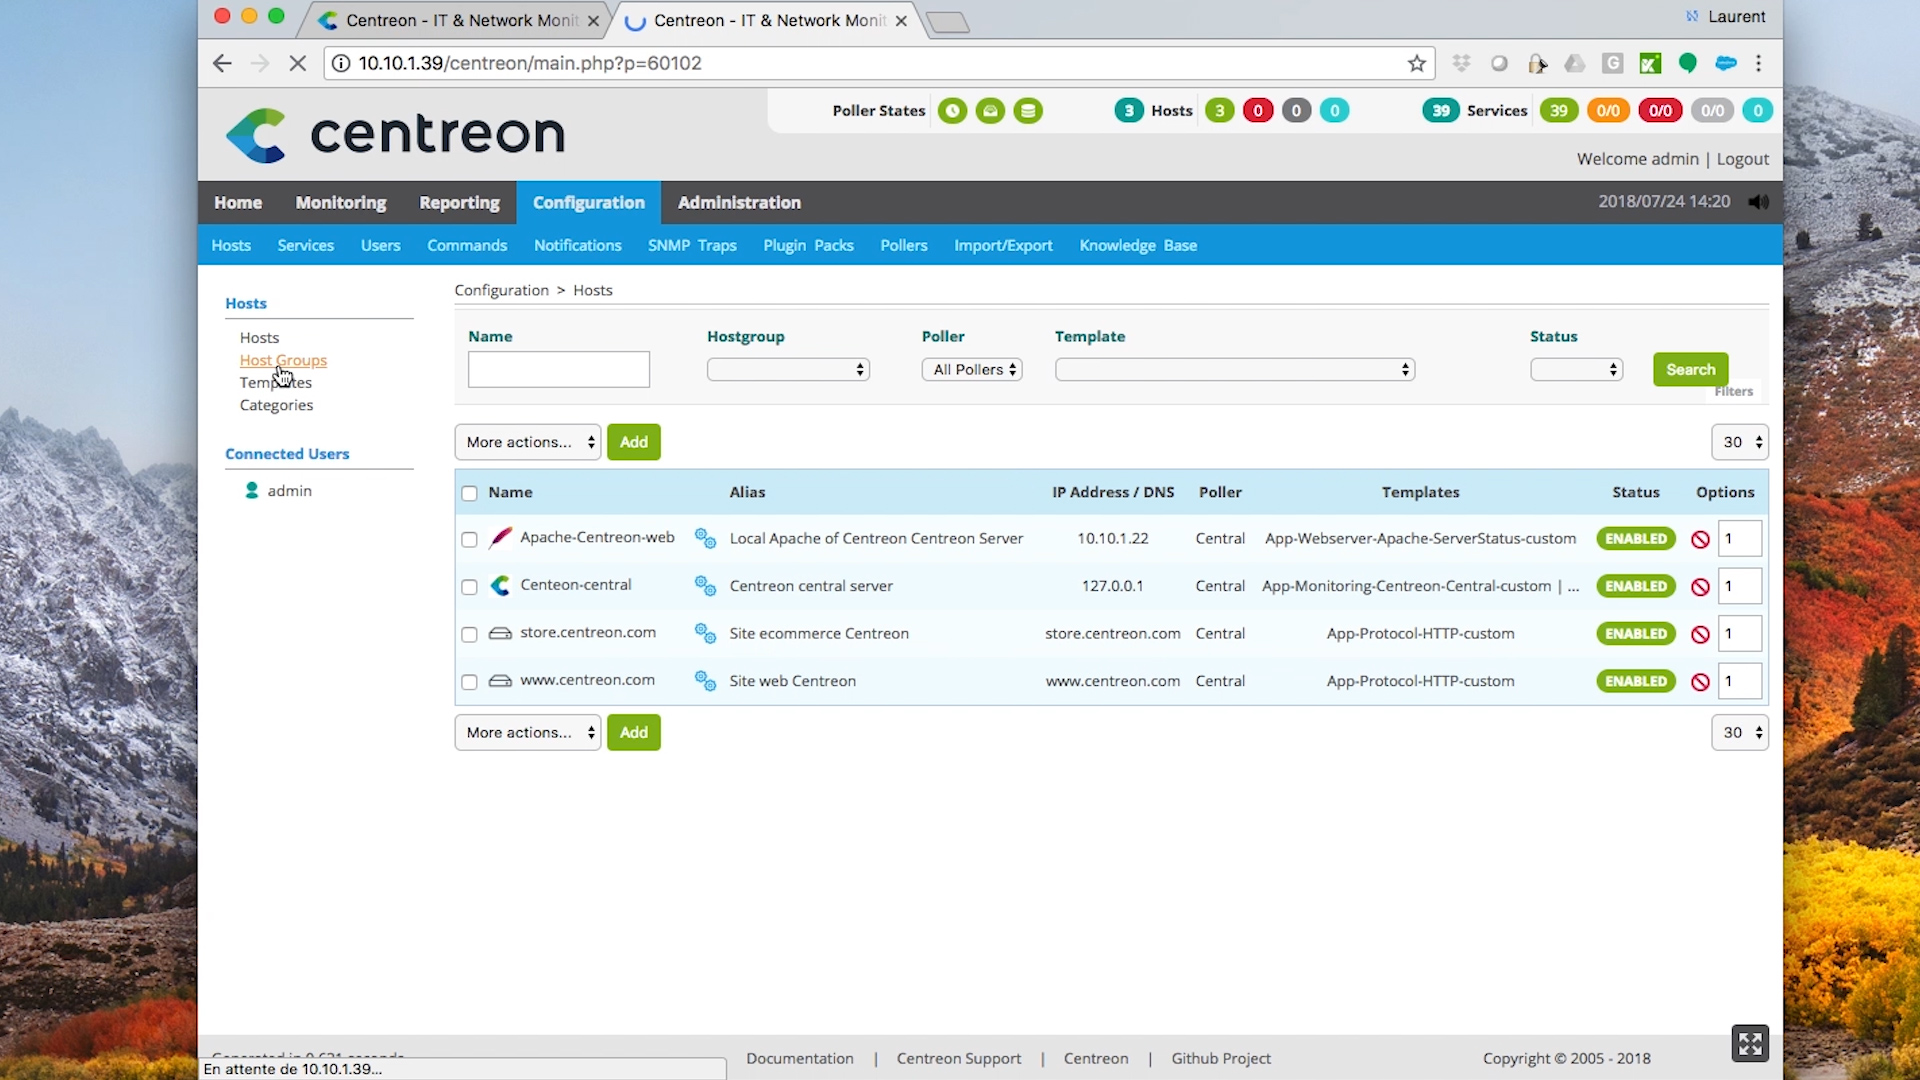 Centreon Tutorial - How to use Centreon API Web interface?